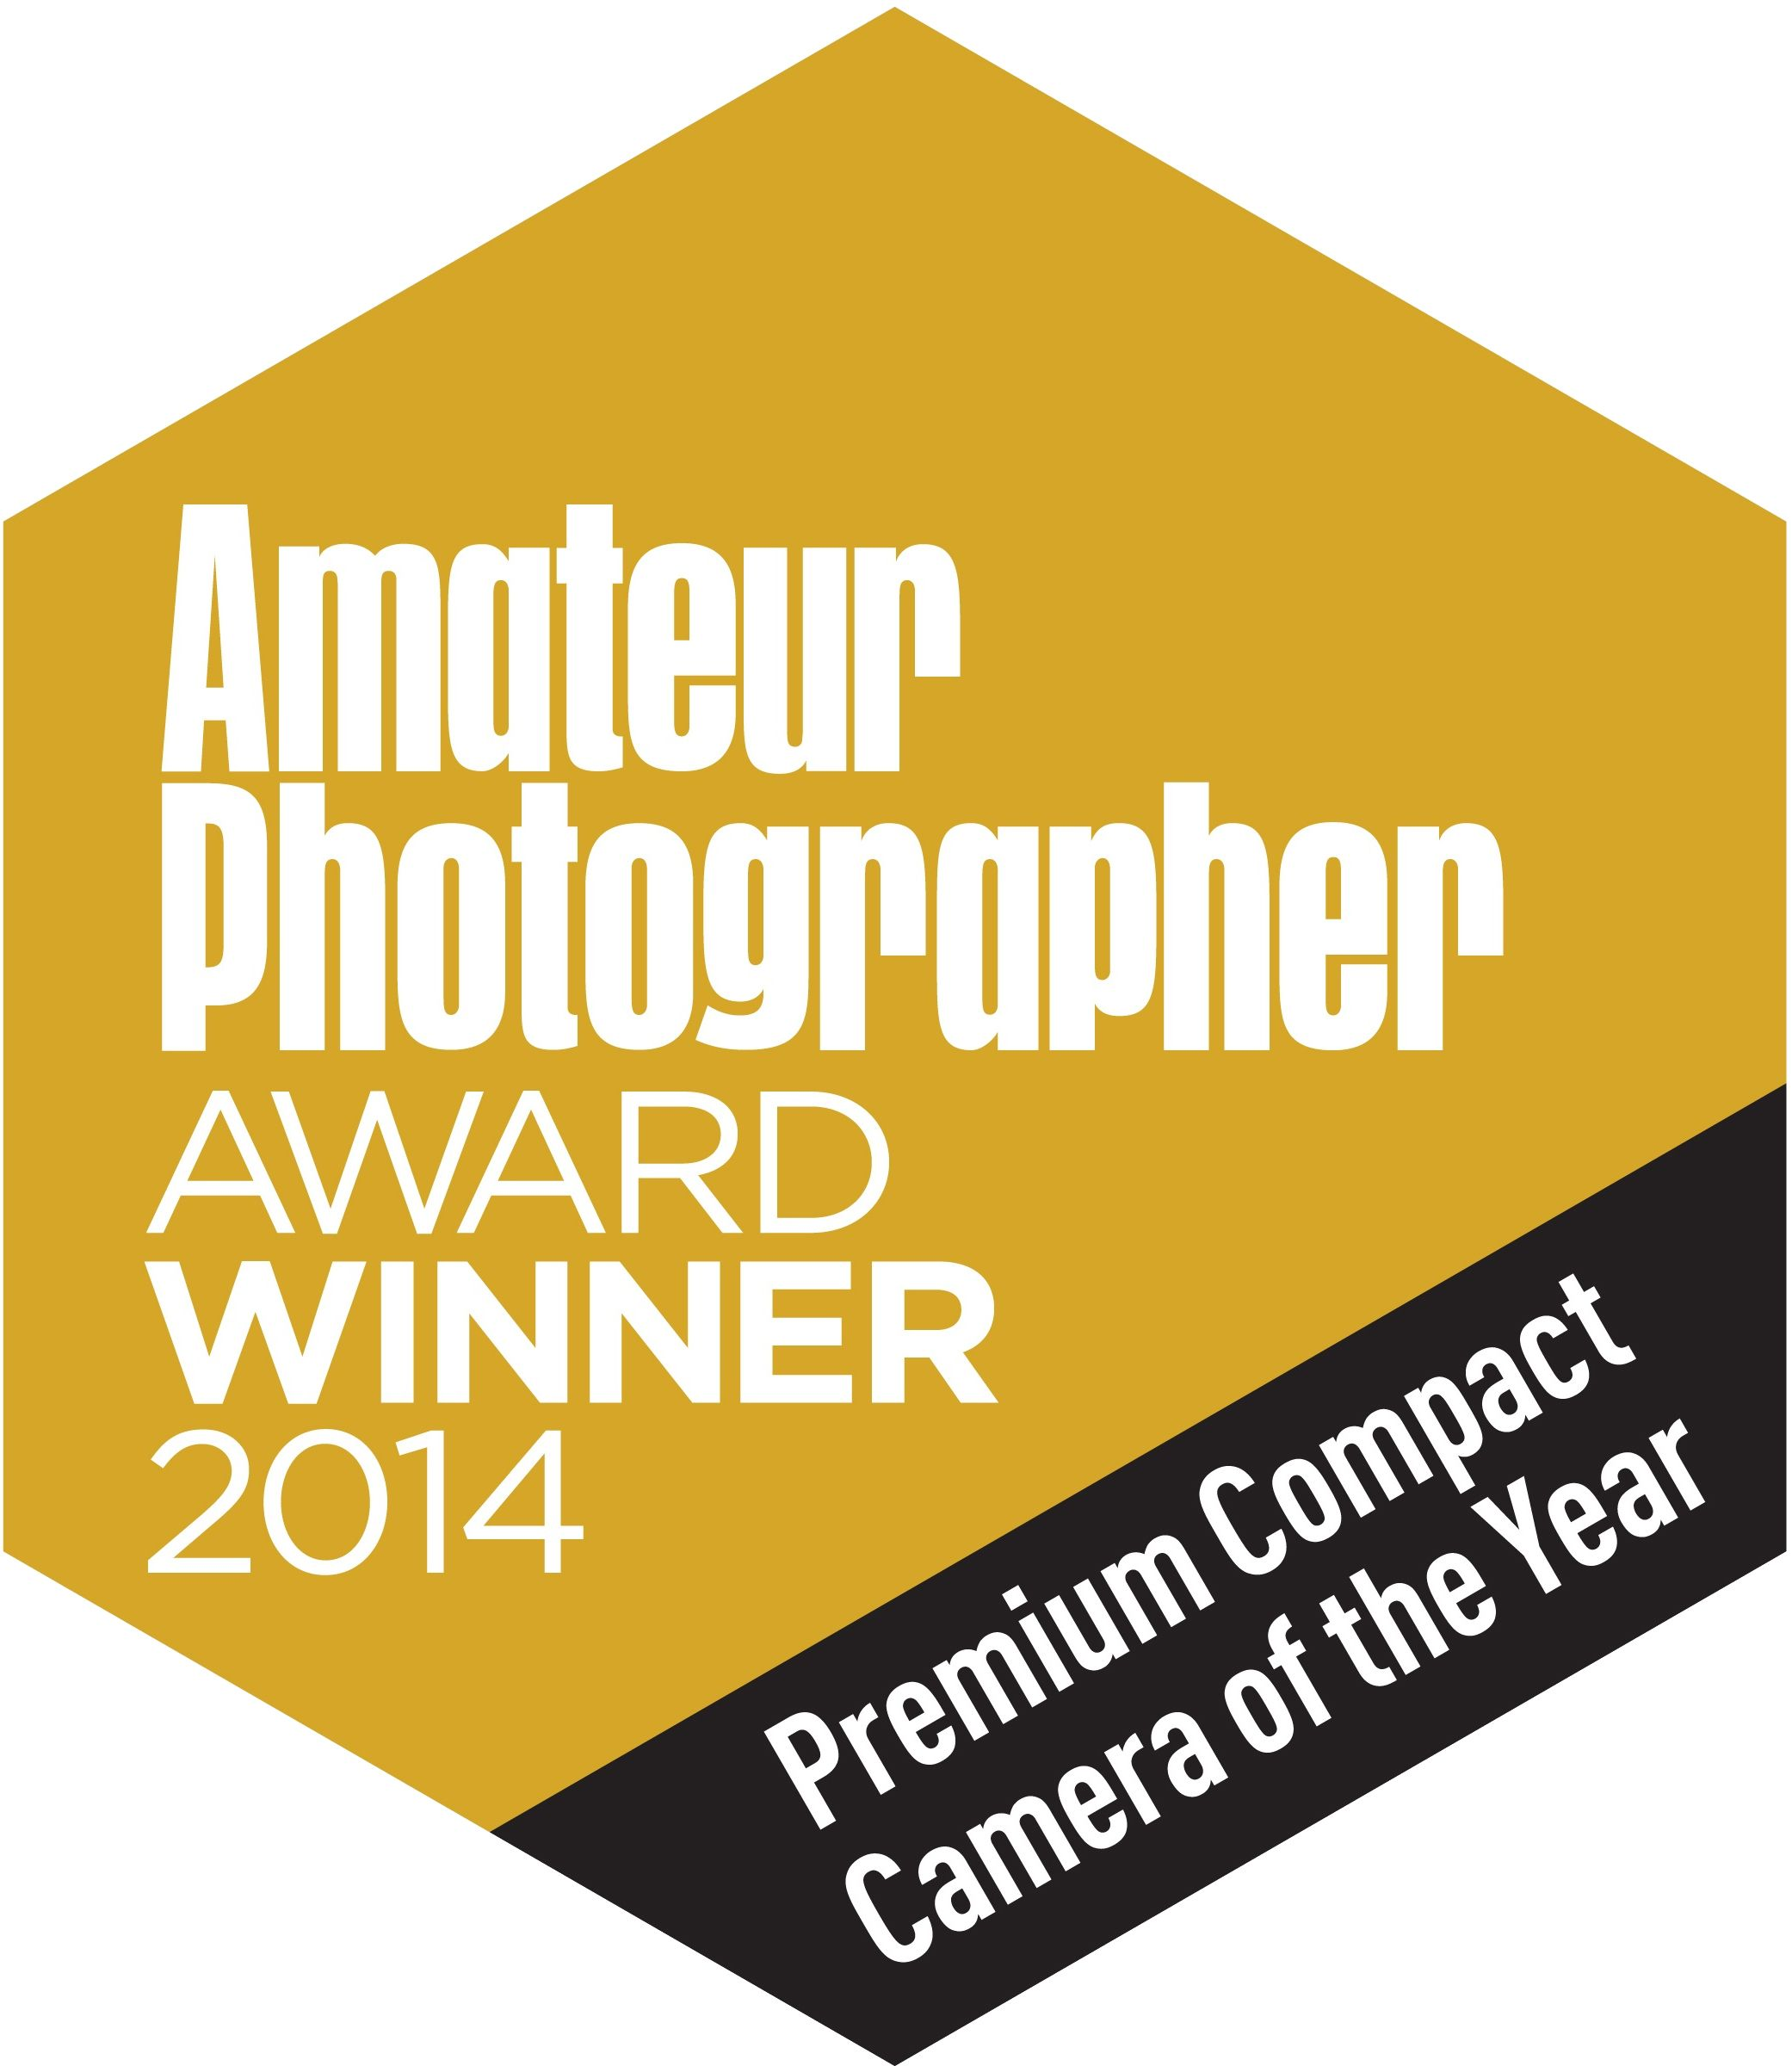 Amateur Photograph Award Winner 2014 - Premium Compact of the Year